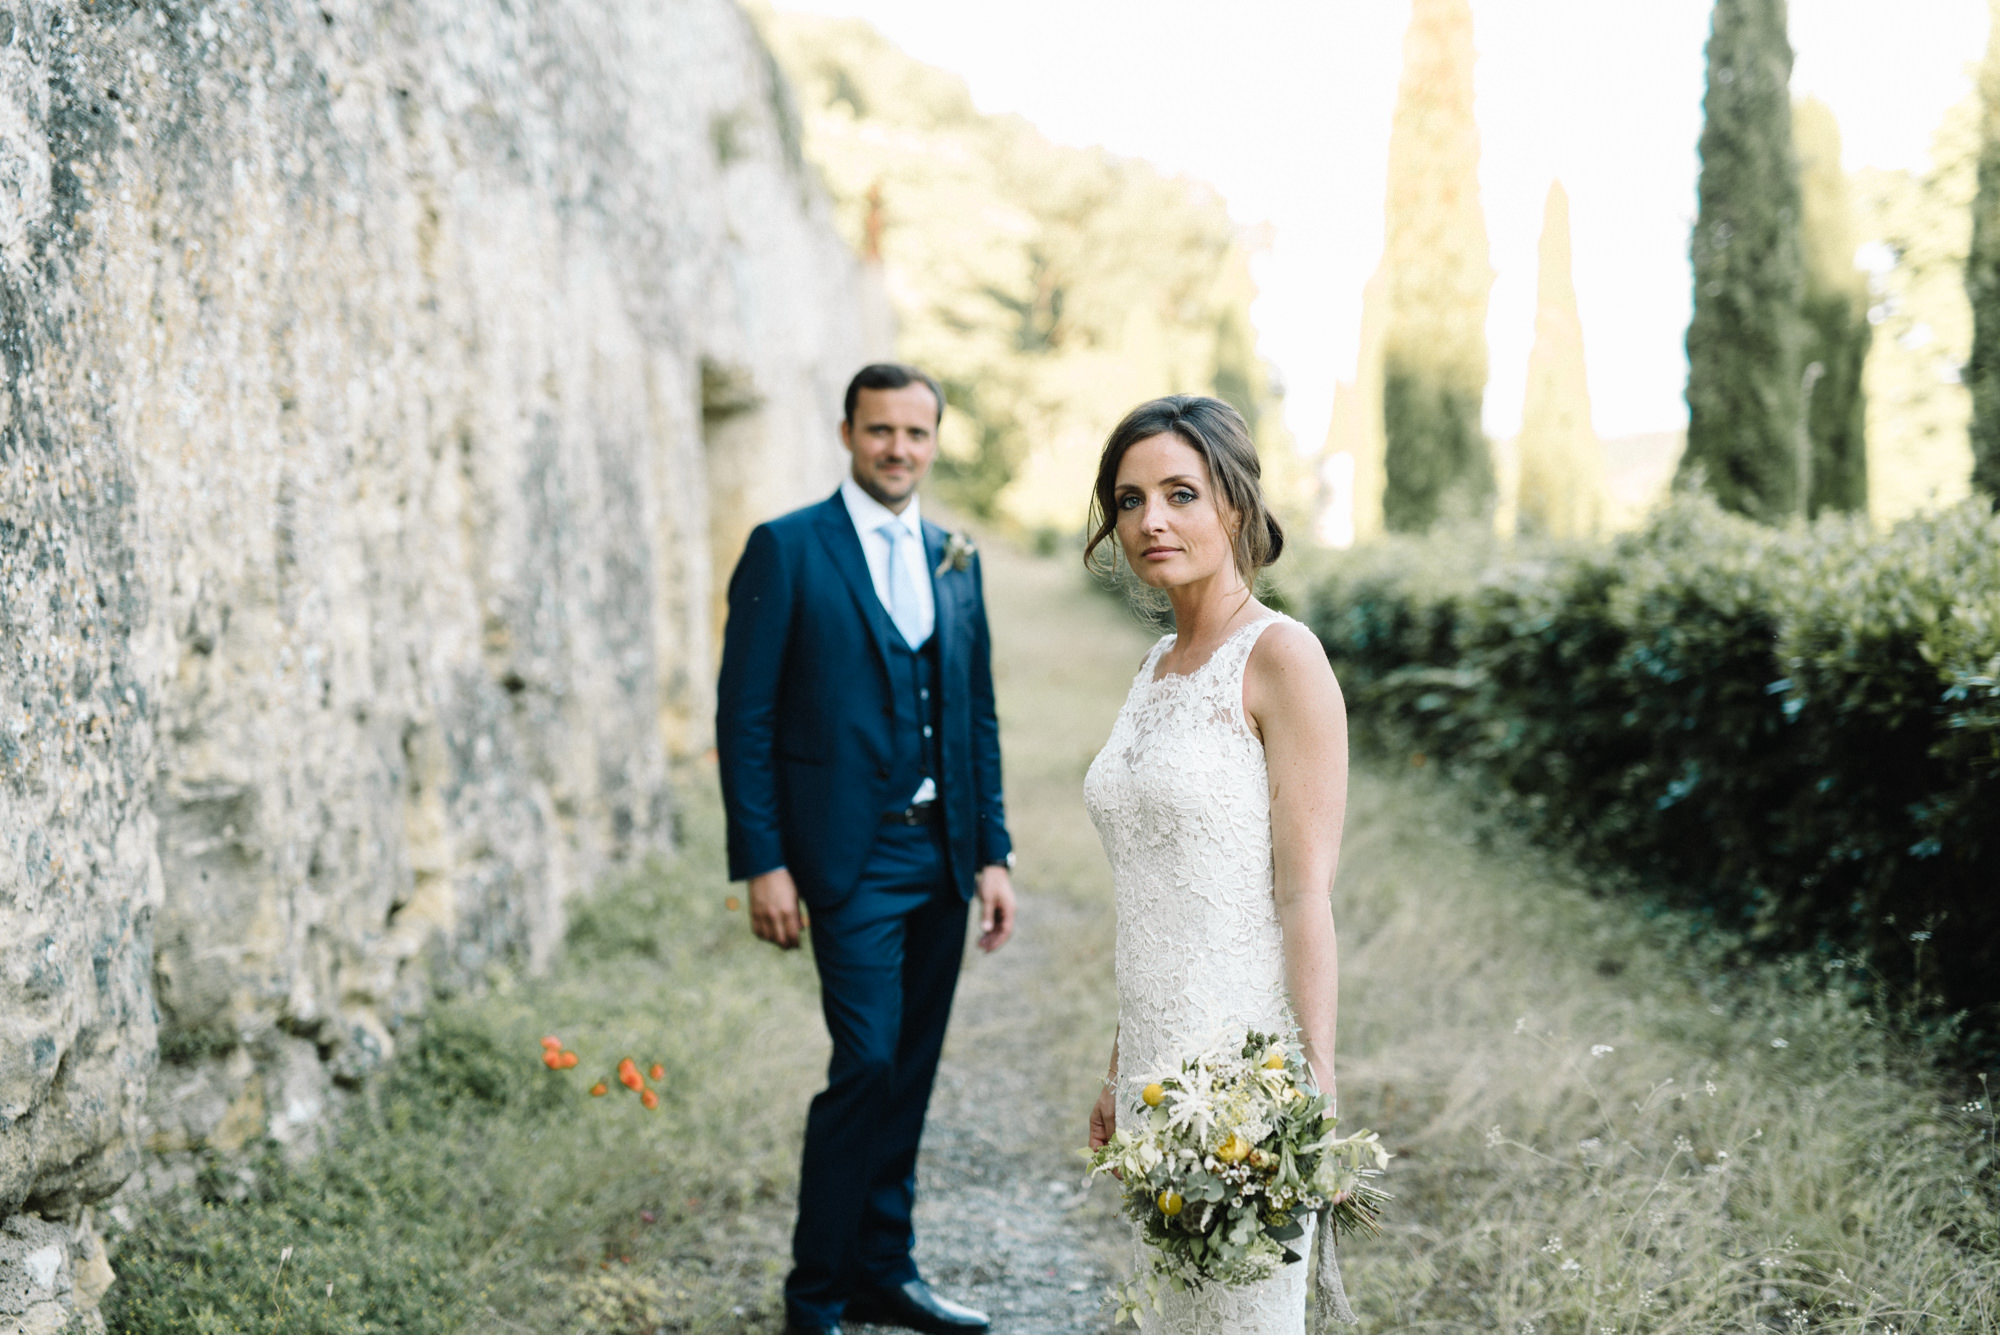 willybroussephotography-wedding-loirevalley-bidaudieres-laura-mathieu-73